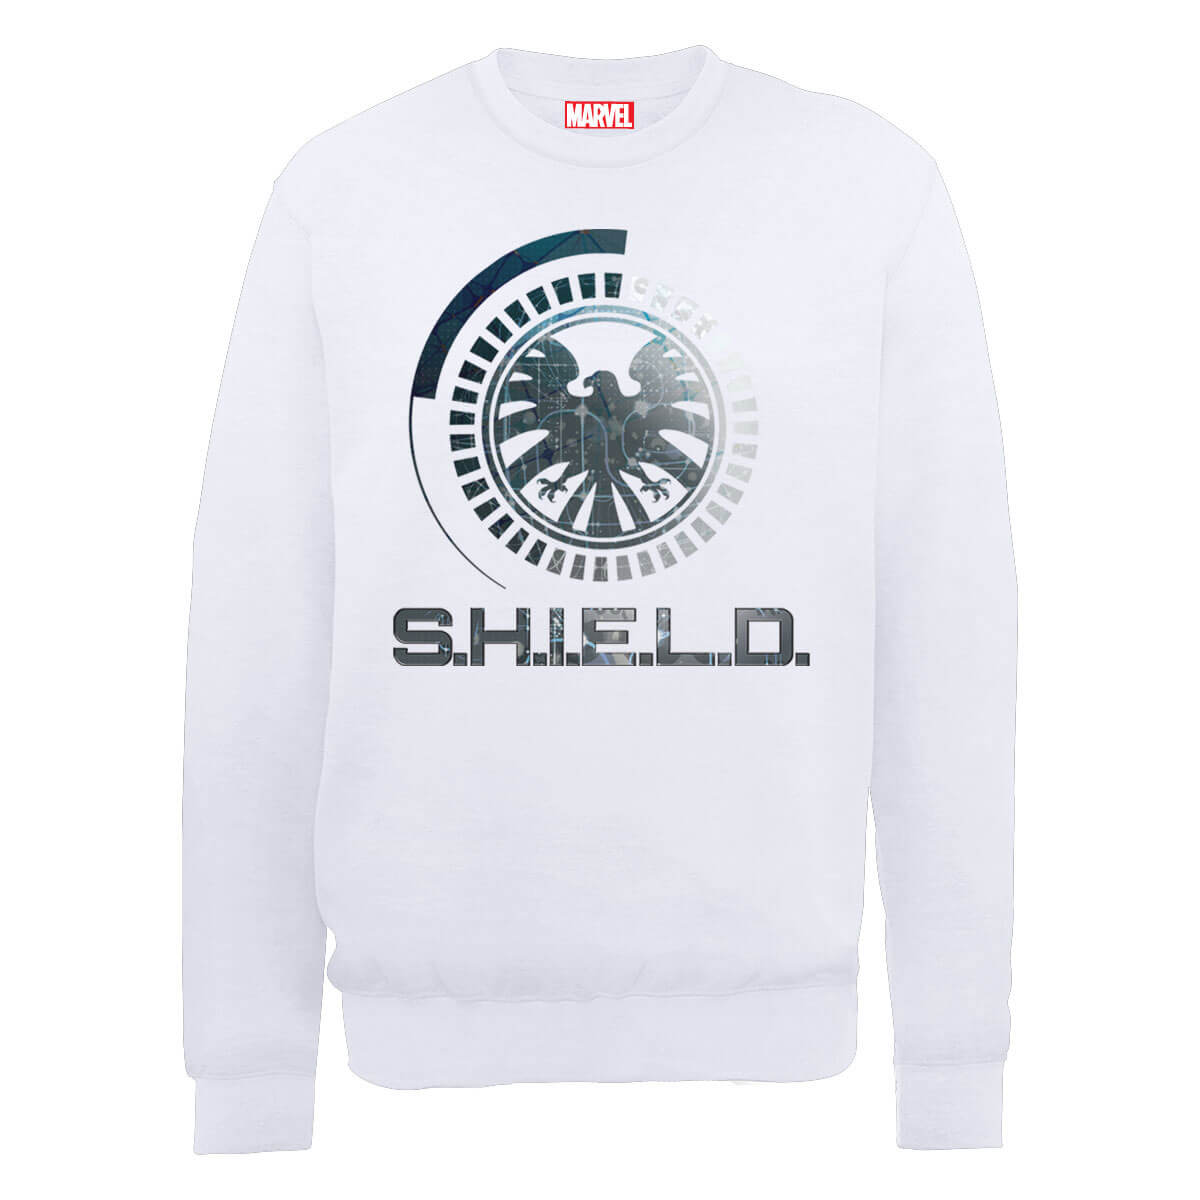 Marvel Avengers Assemble Shield Badge Sweatshirt - White - XXL - White